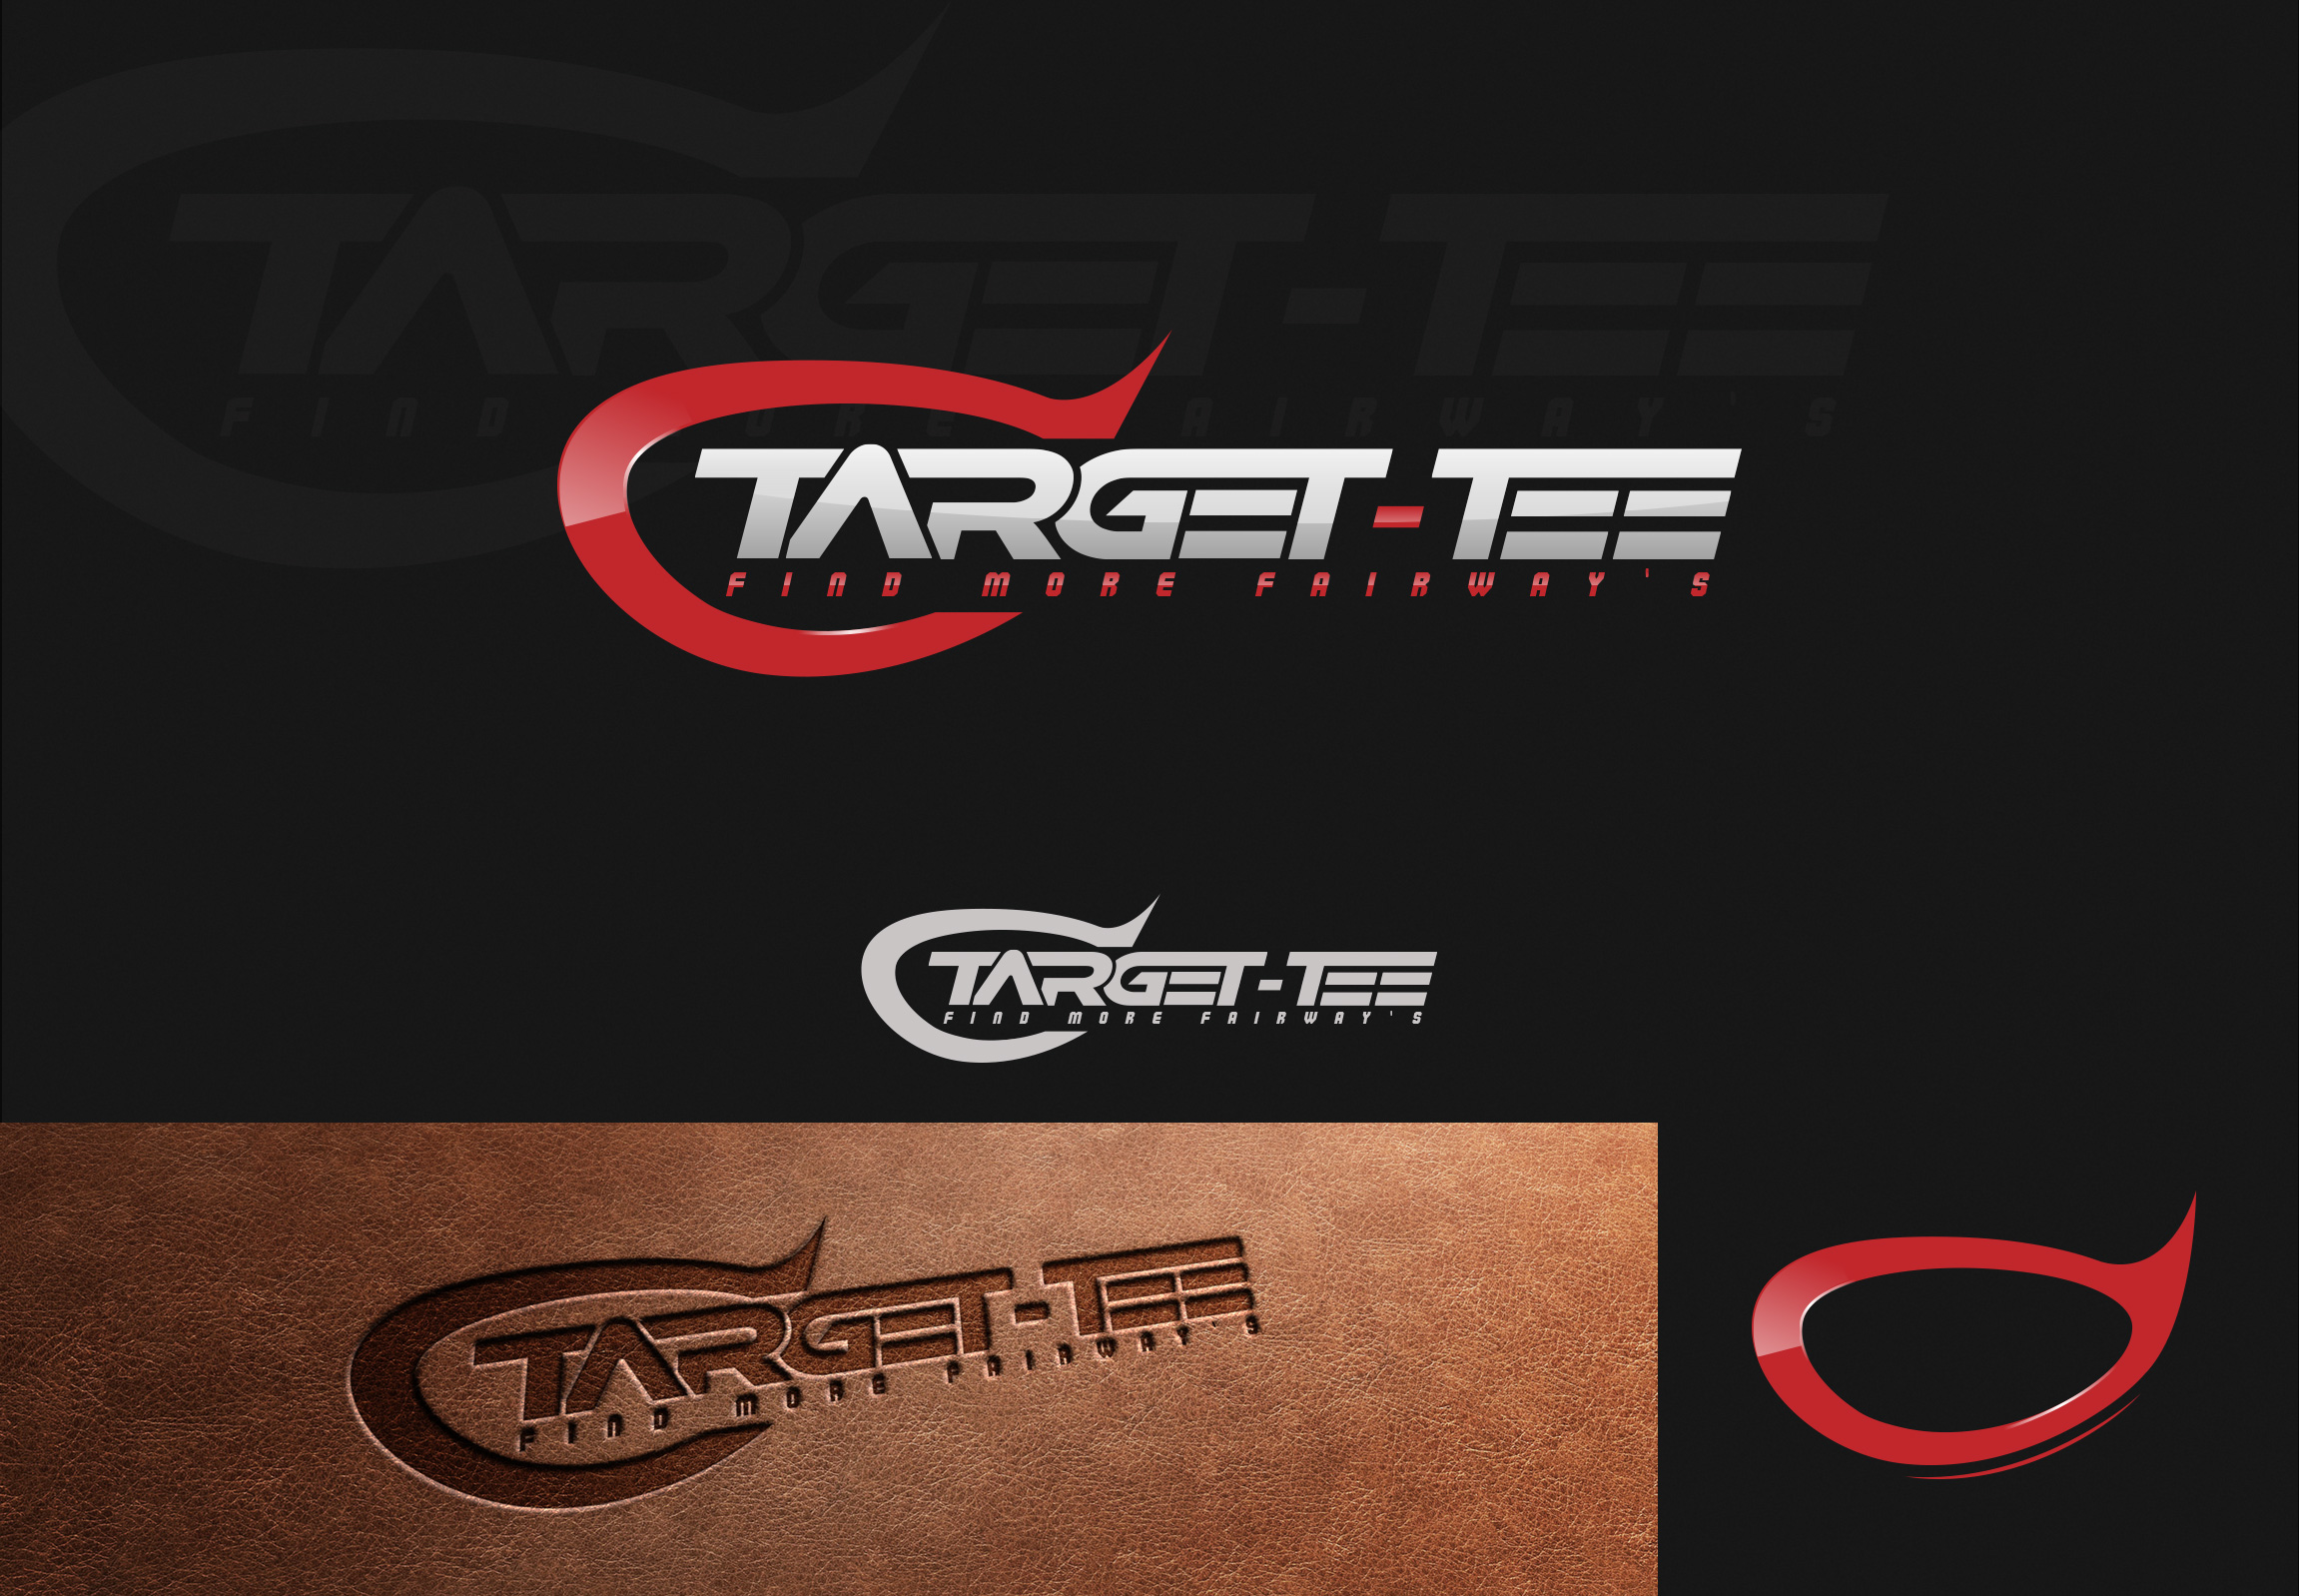 Logo Design by olii - Entry No. 144 in the Logo Design Contest Imaginative Logo Design for TARGET-TEE.